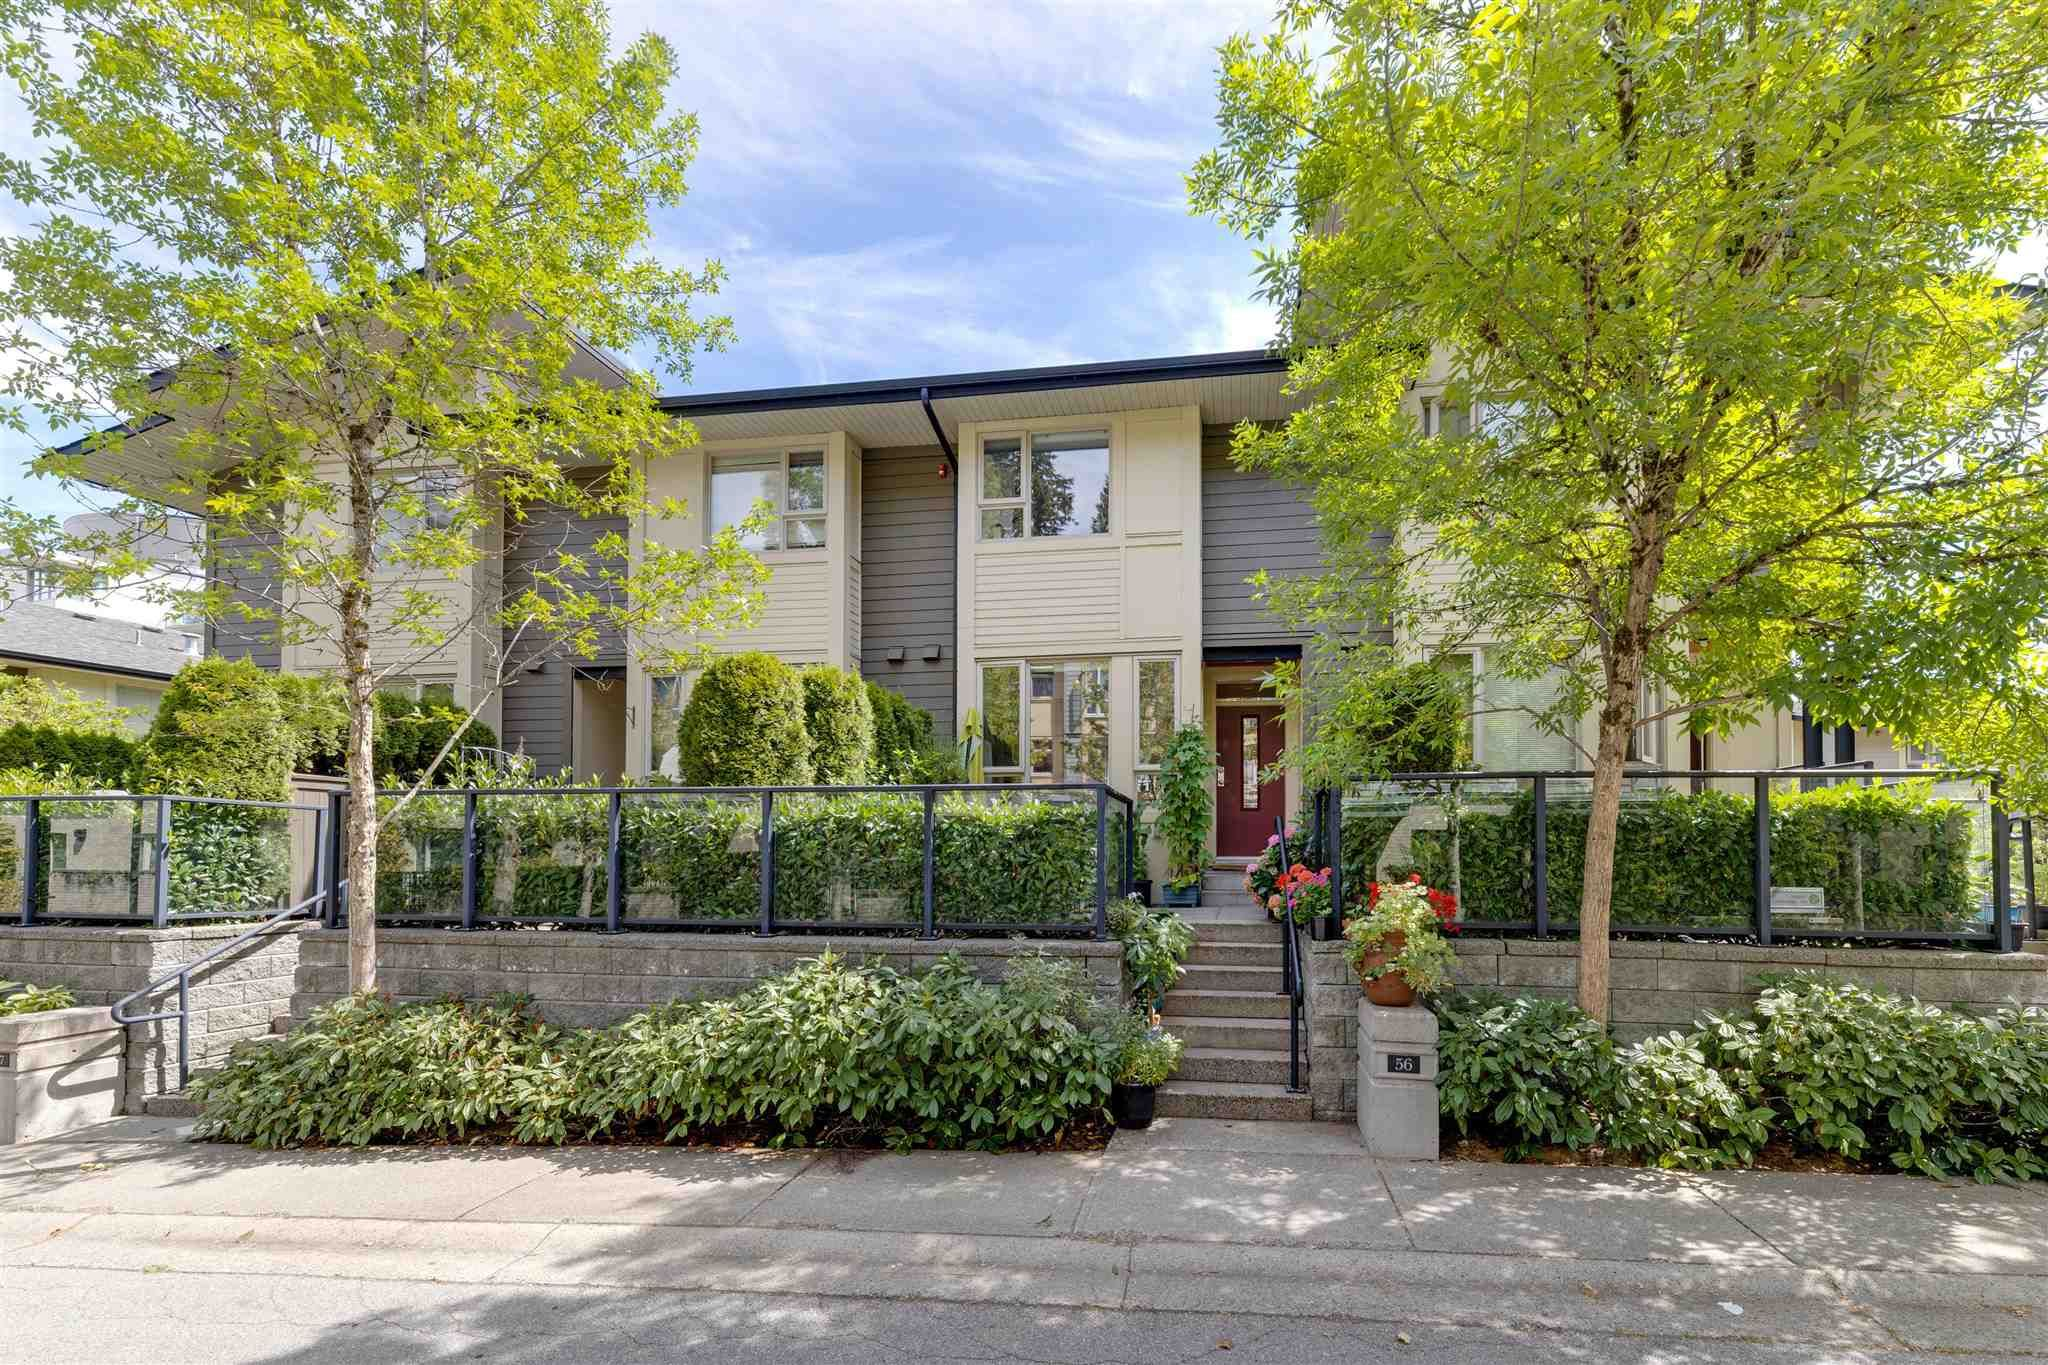 """Main Photo: 56 9229 UNIVERSITY Crescent in Burnaby: Simon Fraser Univer. Townhouse for sale in """"SERENITY"""" (Burnaby North)  : MLS®# R2608041"""